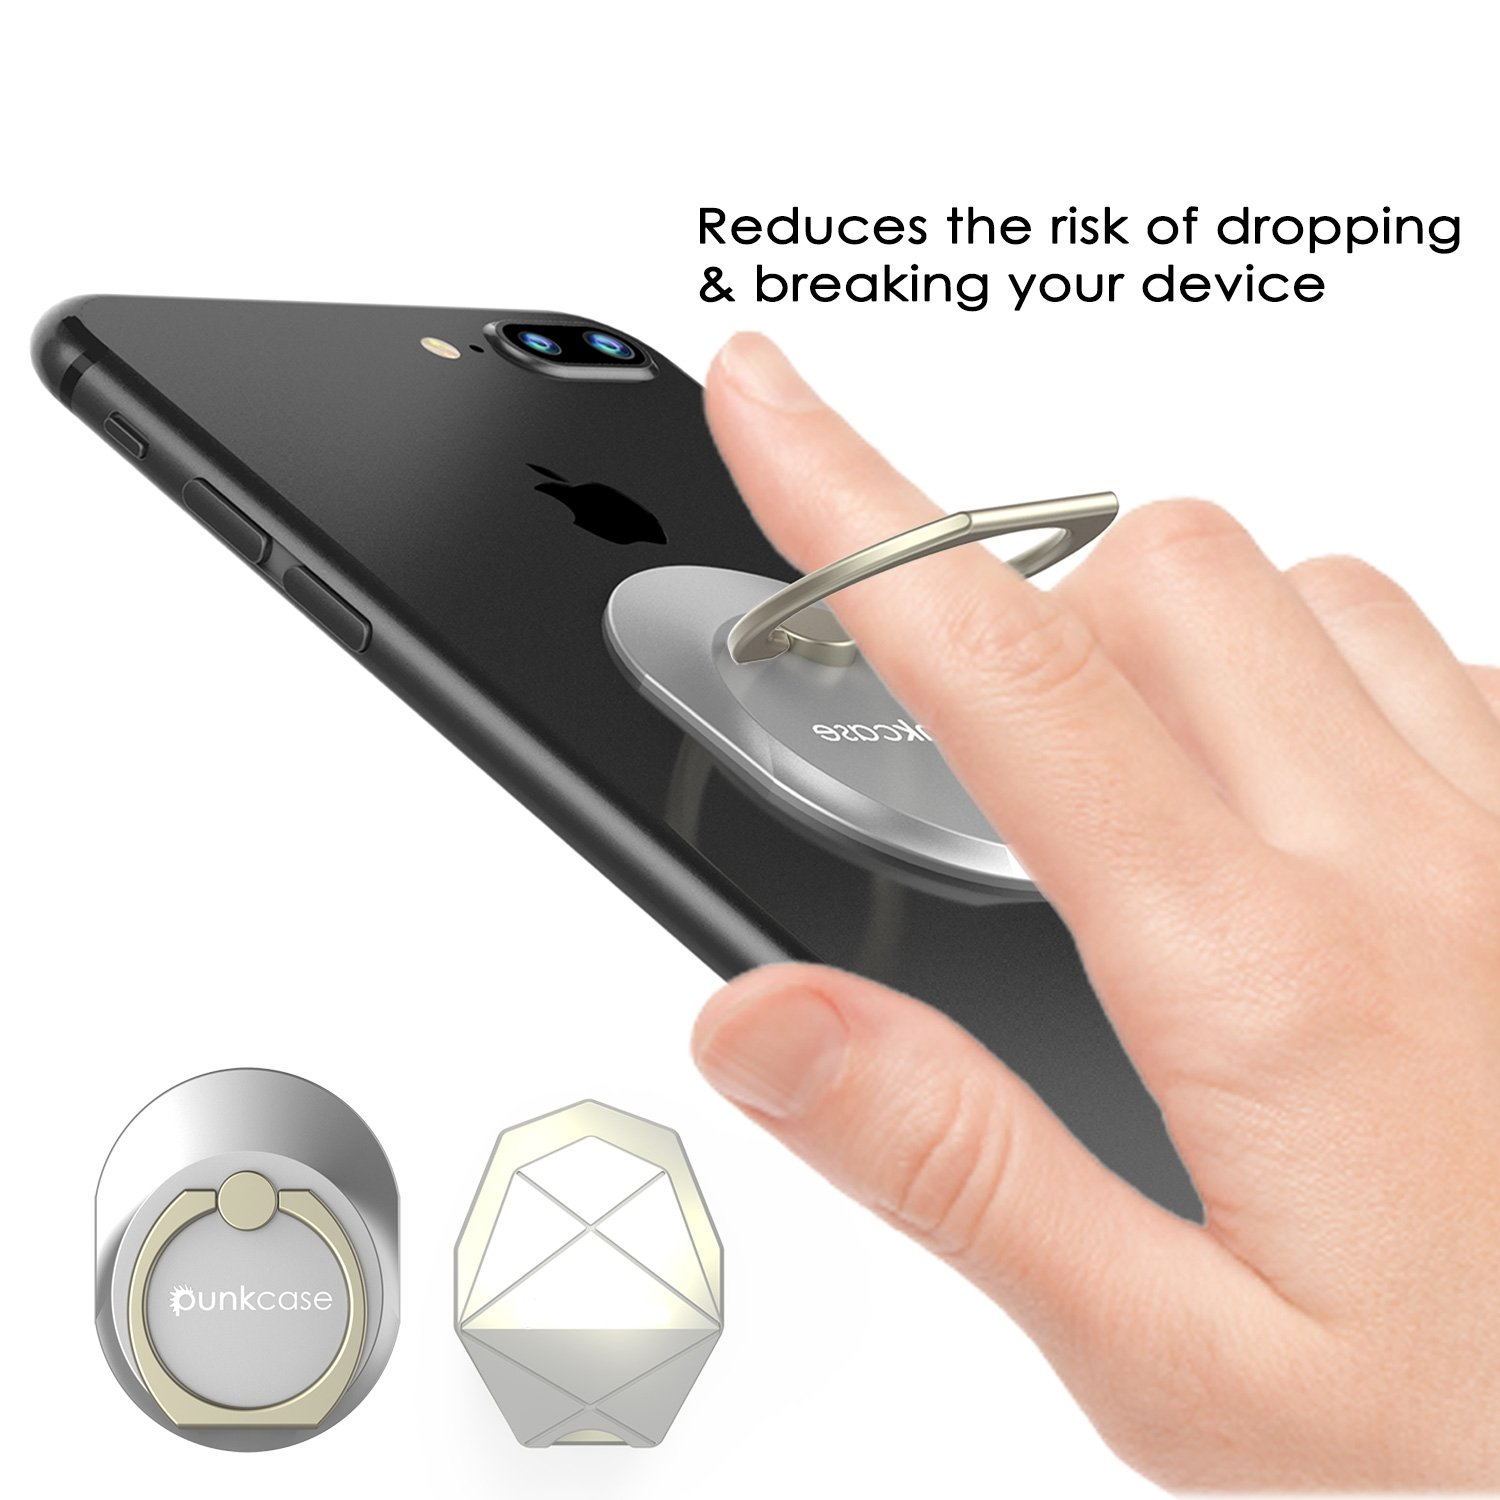 Car Mount /& Kickstand for Smartphones ROSE GOLD PUNKCASE S-RING Universal Phone Holder Phablets and Tablets Safely /& Comfortably Operate your iPhone or Android Device with One Hand